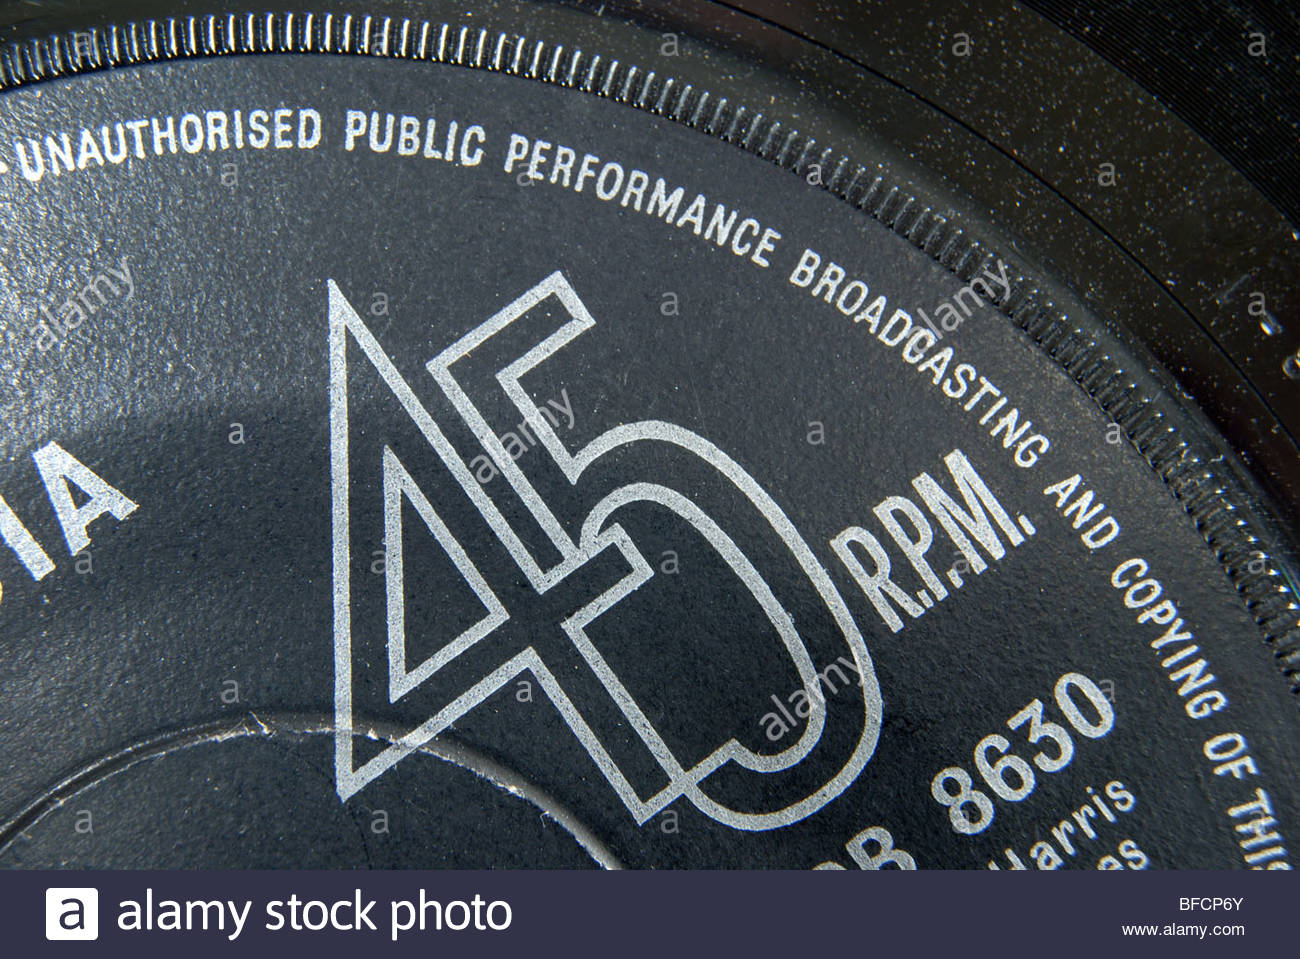 Label of a 45 rpm single record. - Stock Image